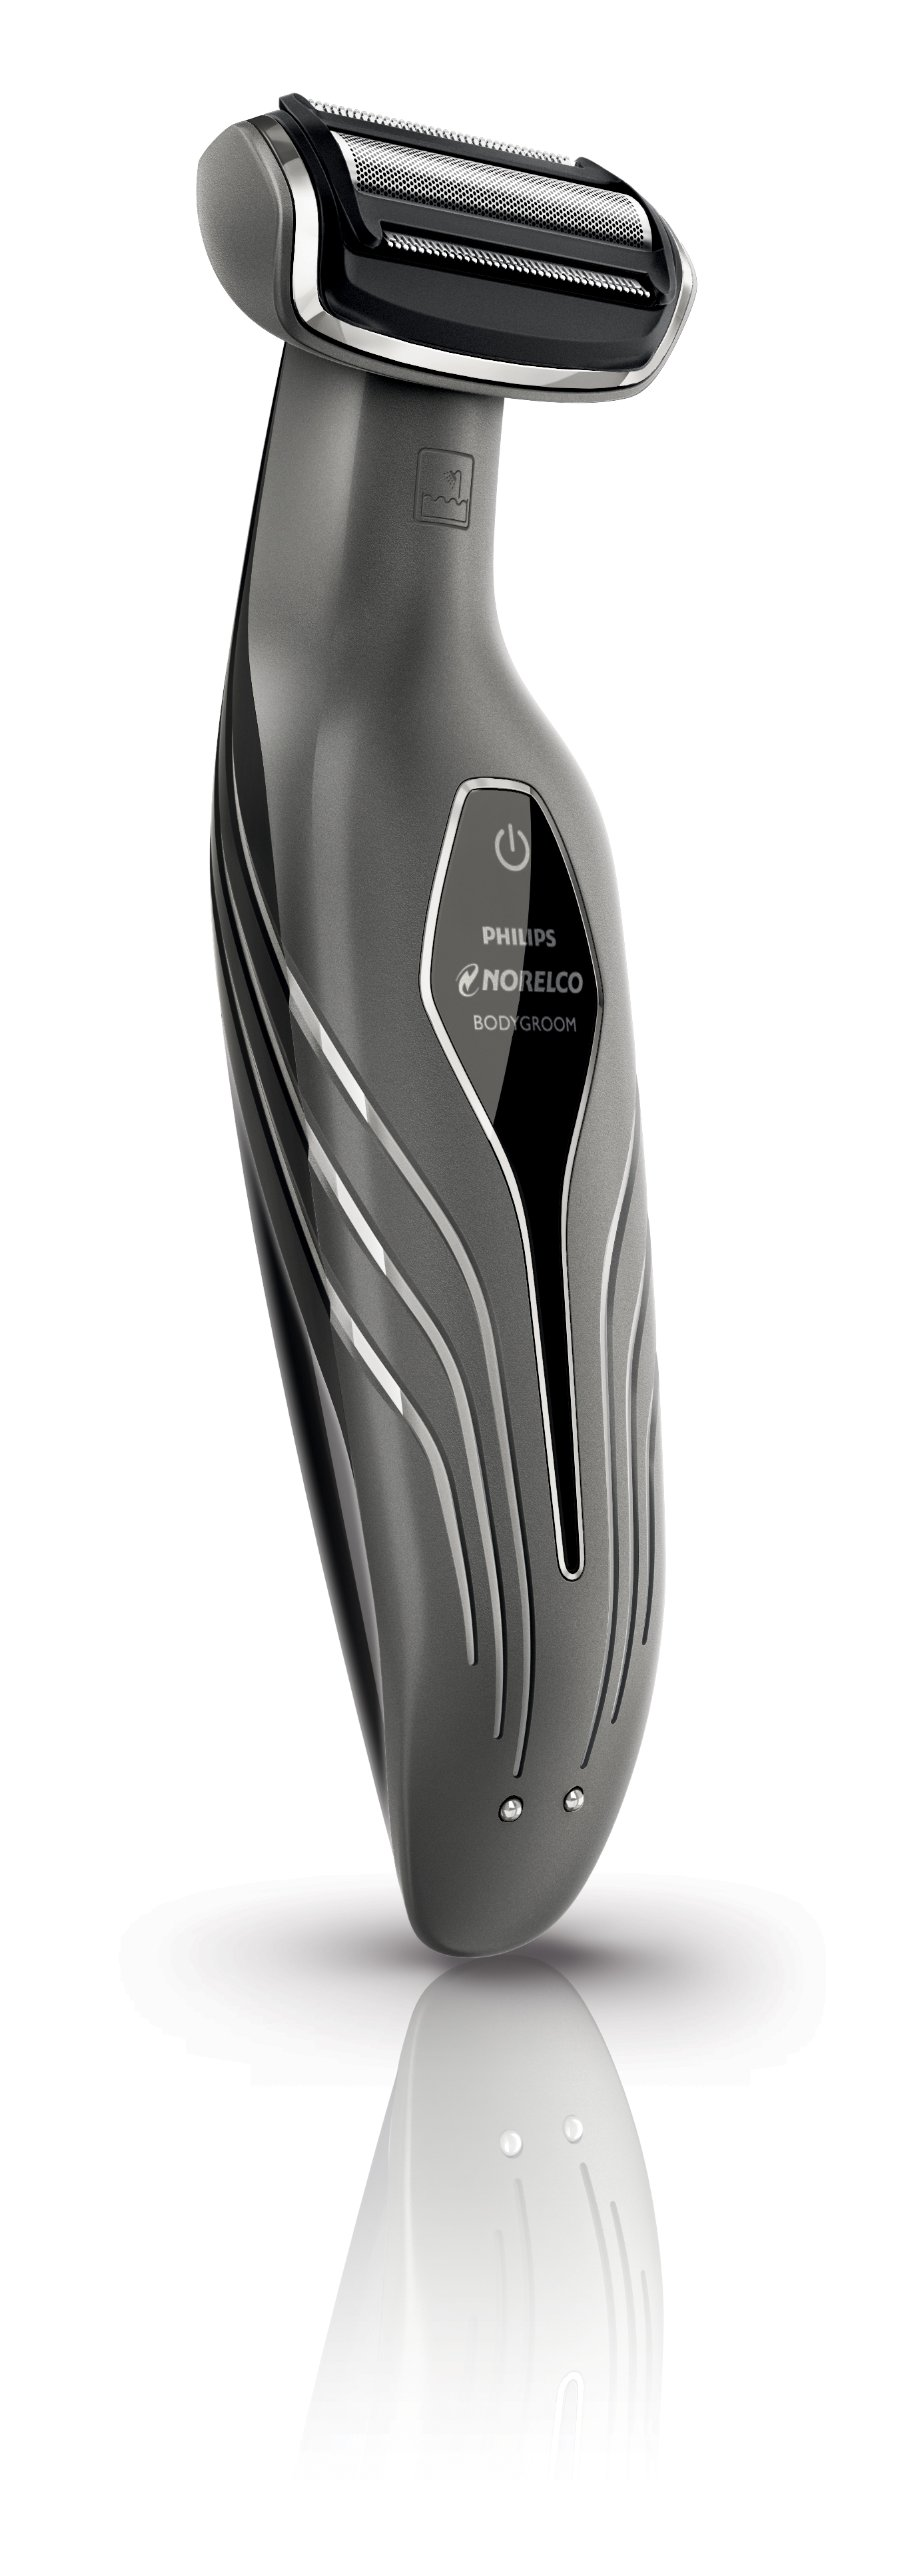 Philips Norelco BG2038/41 Bodygroom 5100 (Packaging May Vary) by Philips Norelco